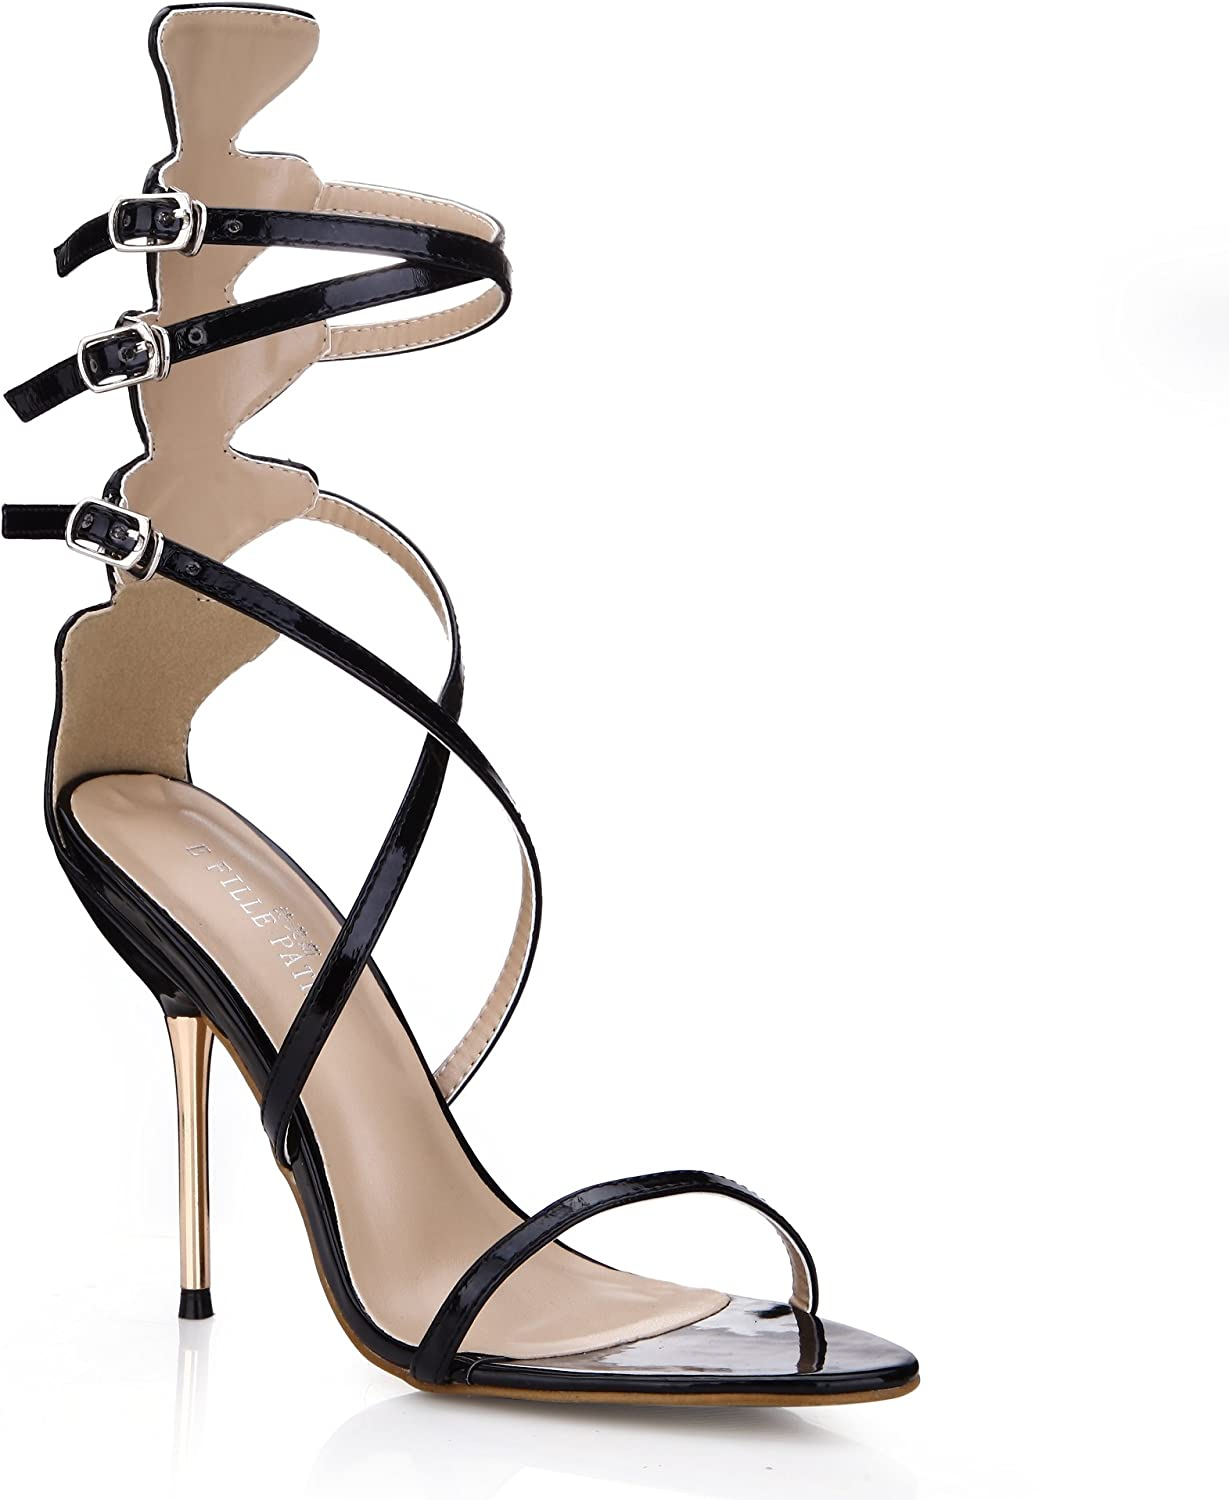 Dolphin Women Black Open Toe High Heel Sandals with Ankle Strap Party shoes Carpet Dress Pump SM000029